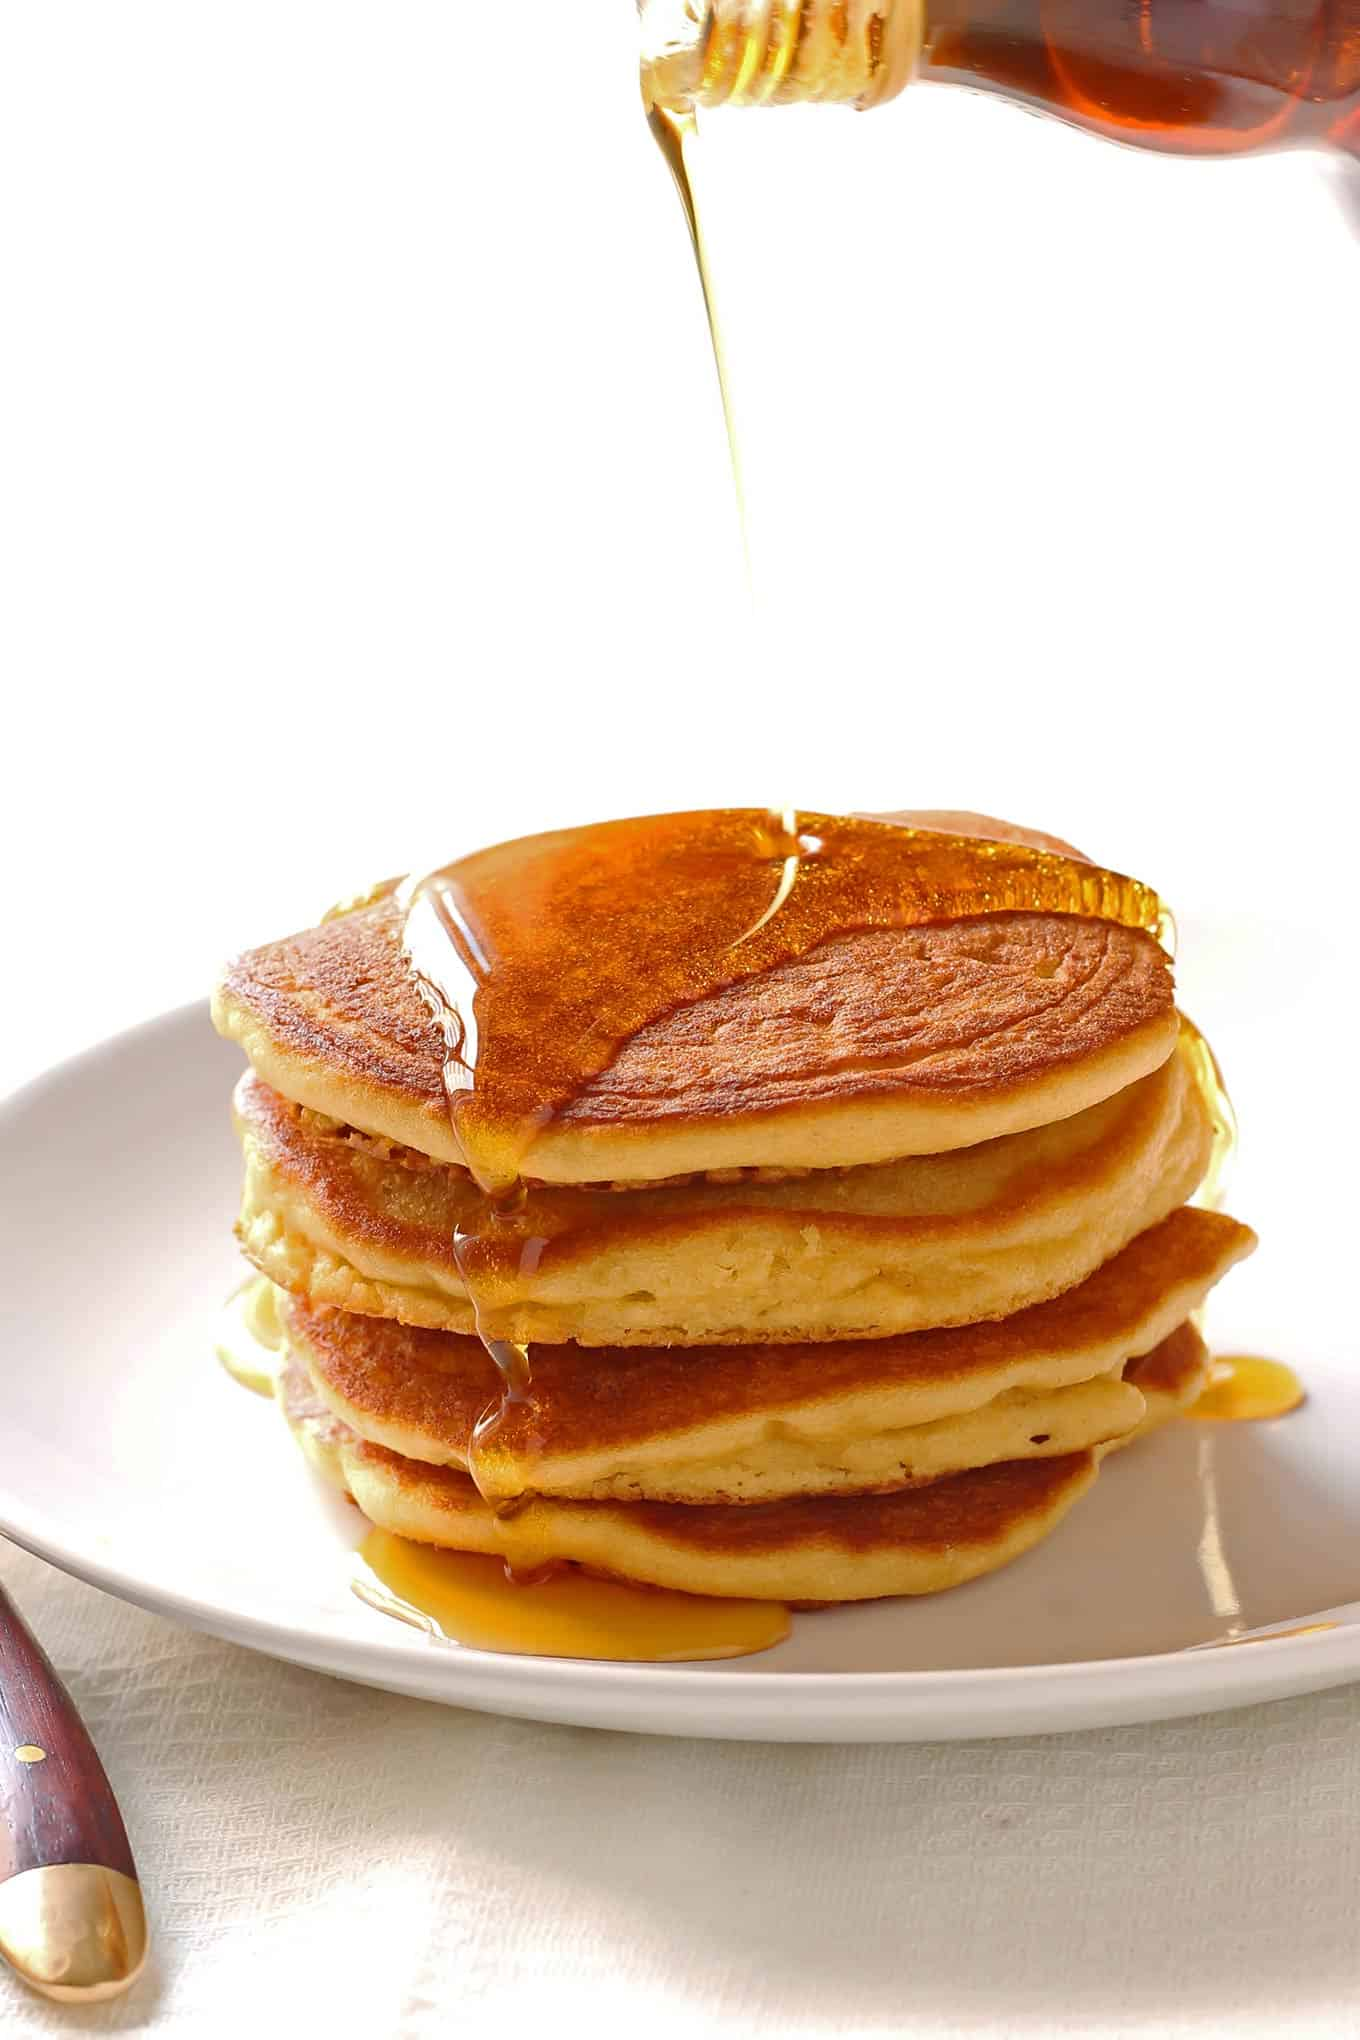 Tapioca flour pancakes recipes